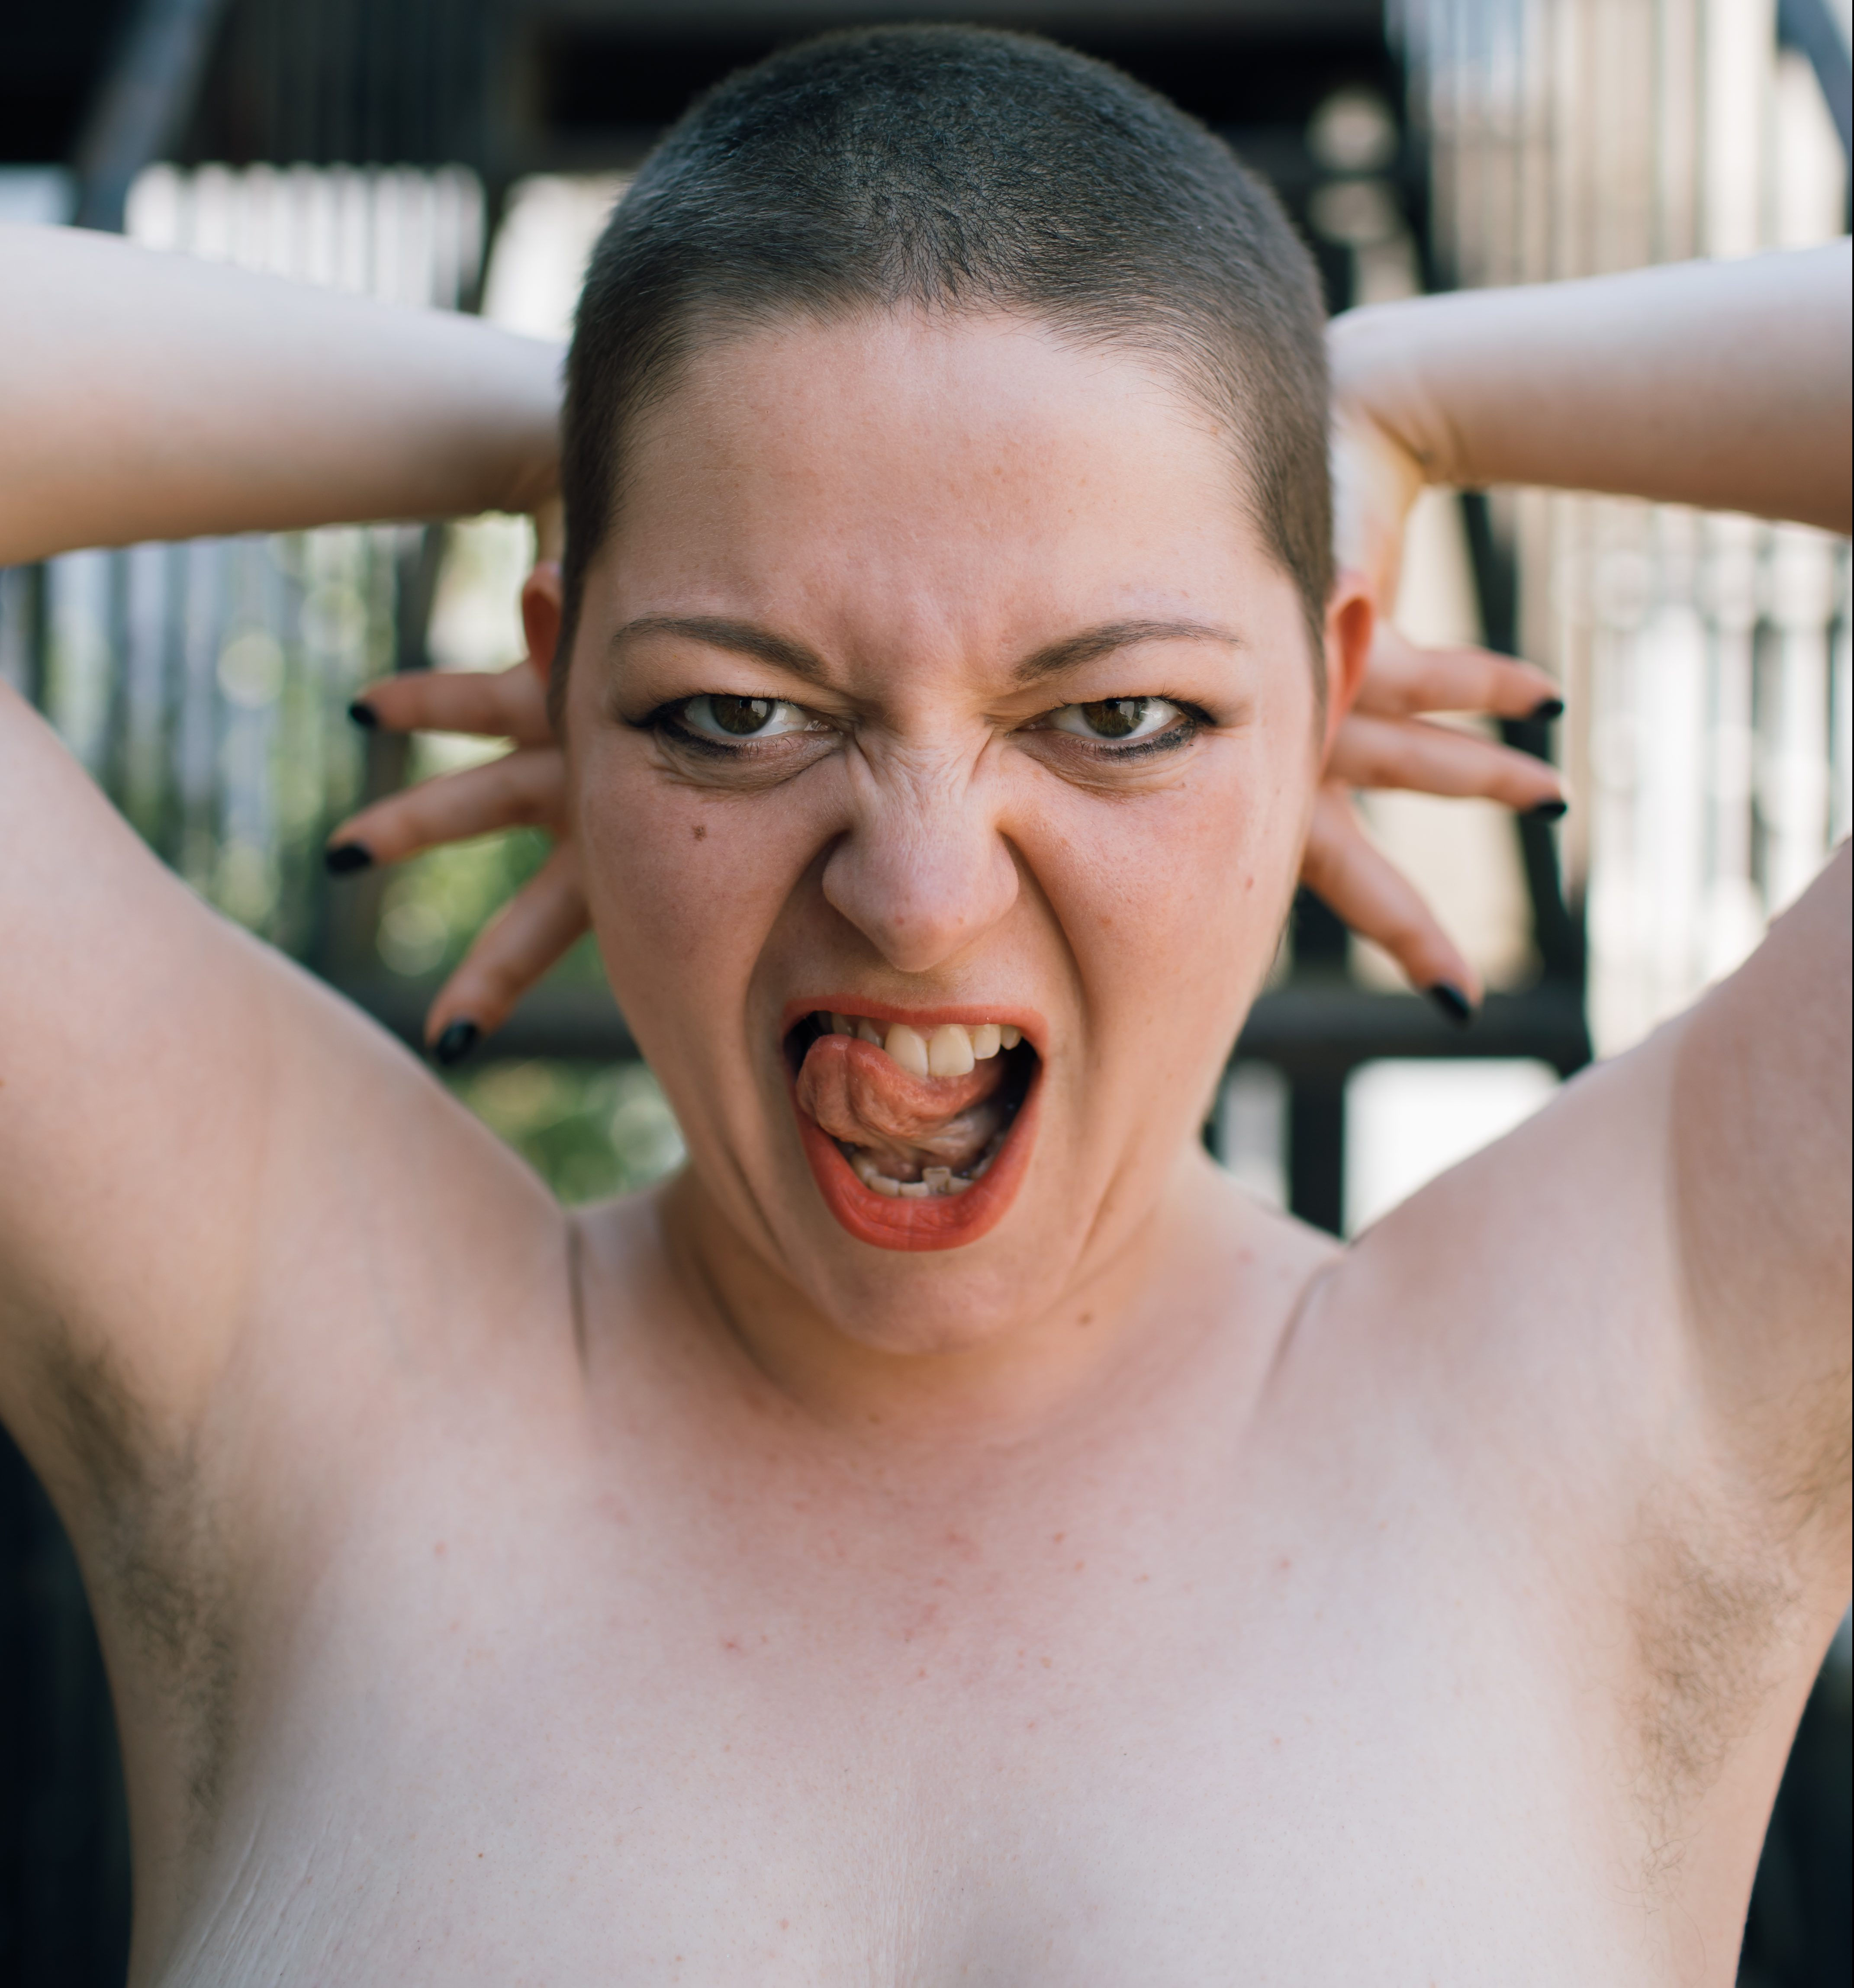 A topless woman holds her arms up and sticks her tongue out at the camera